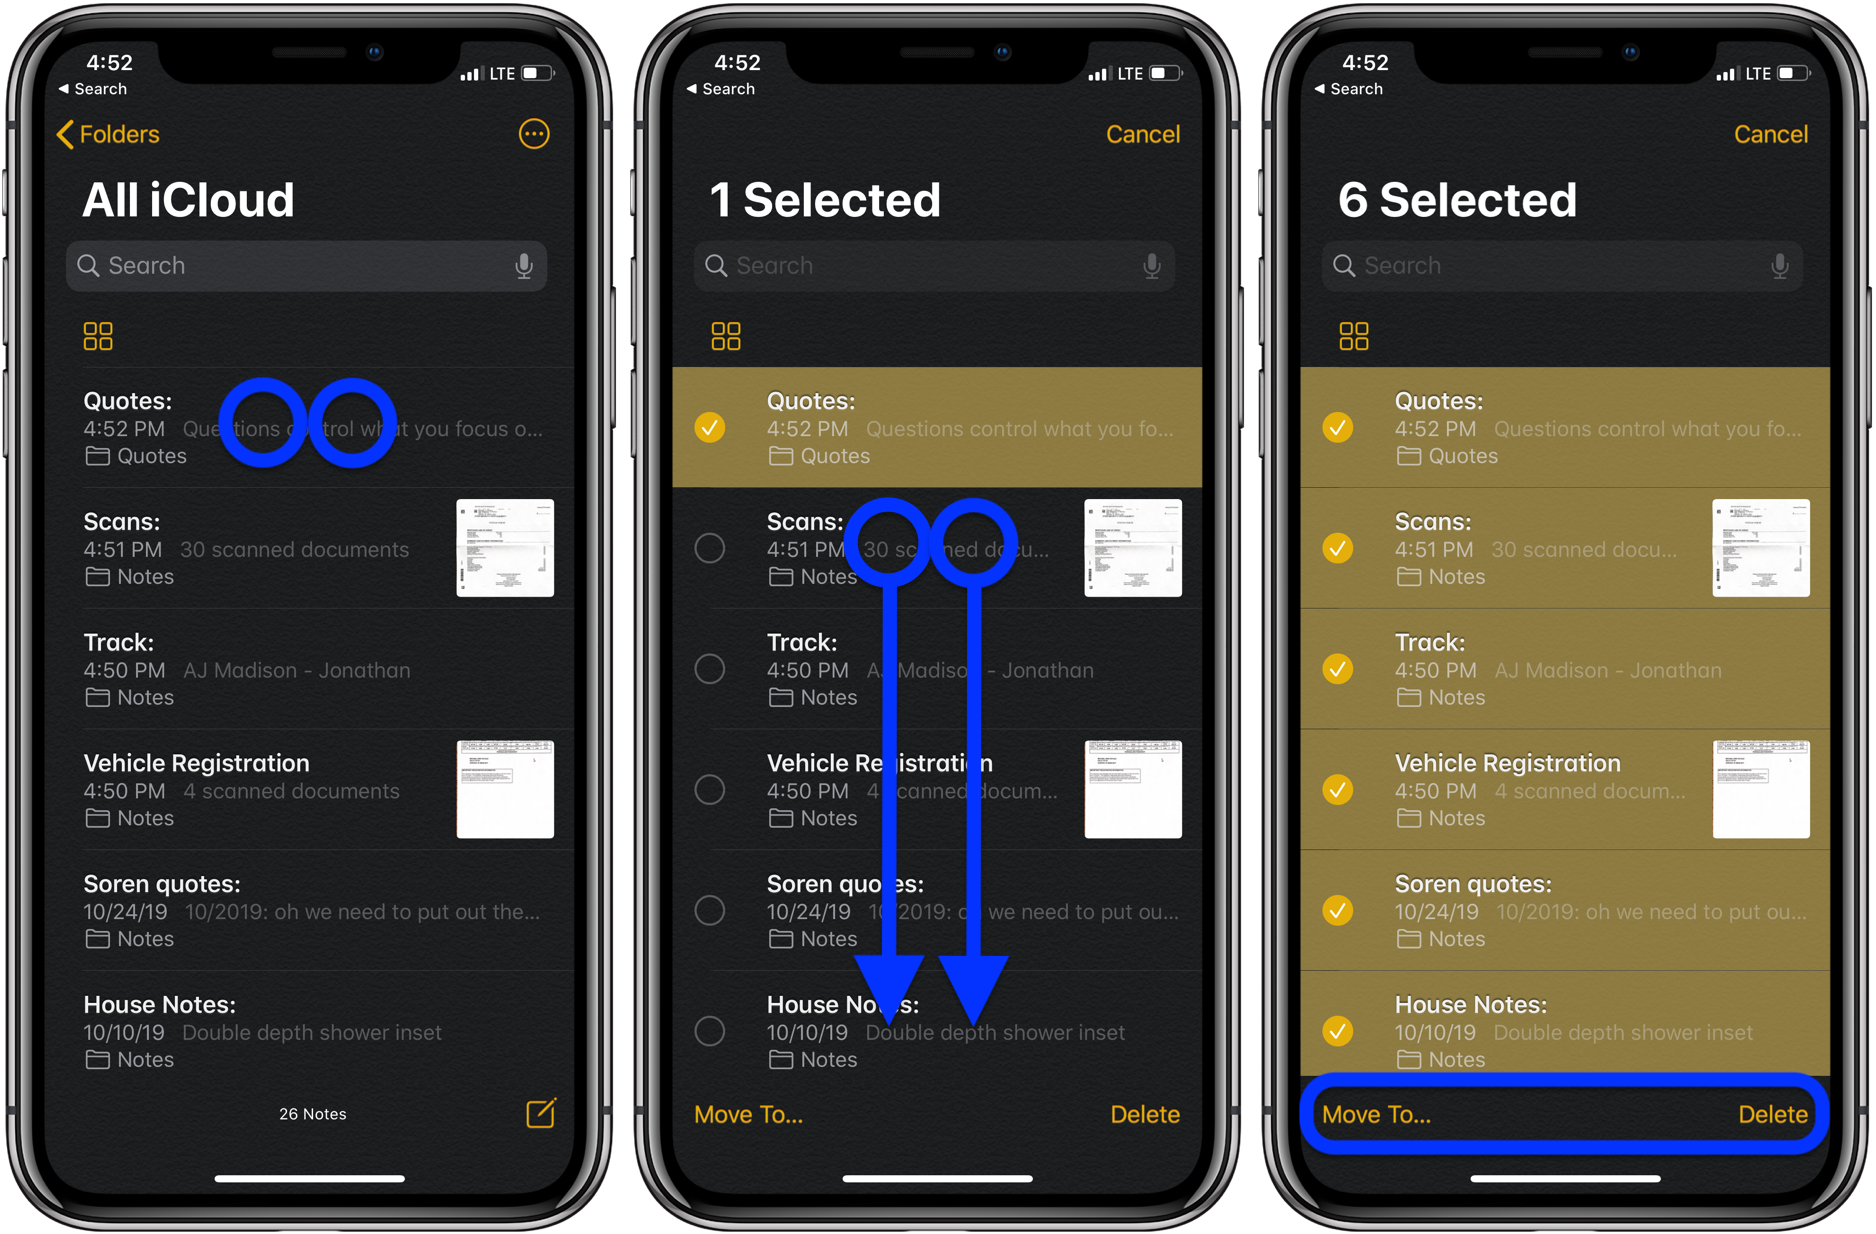 How to quickly select move delete notes on iPhone and iPad walkthrough